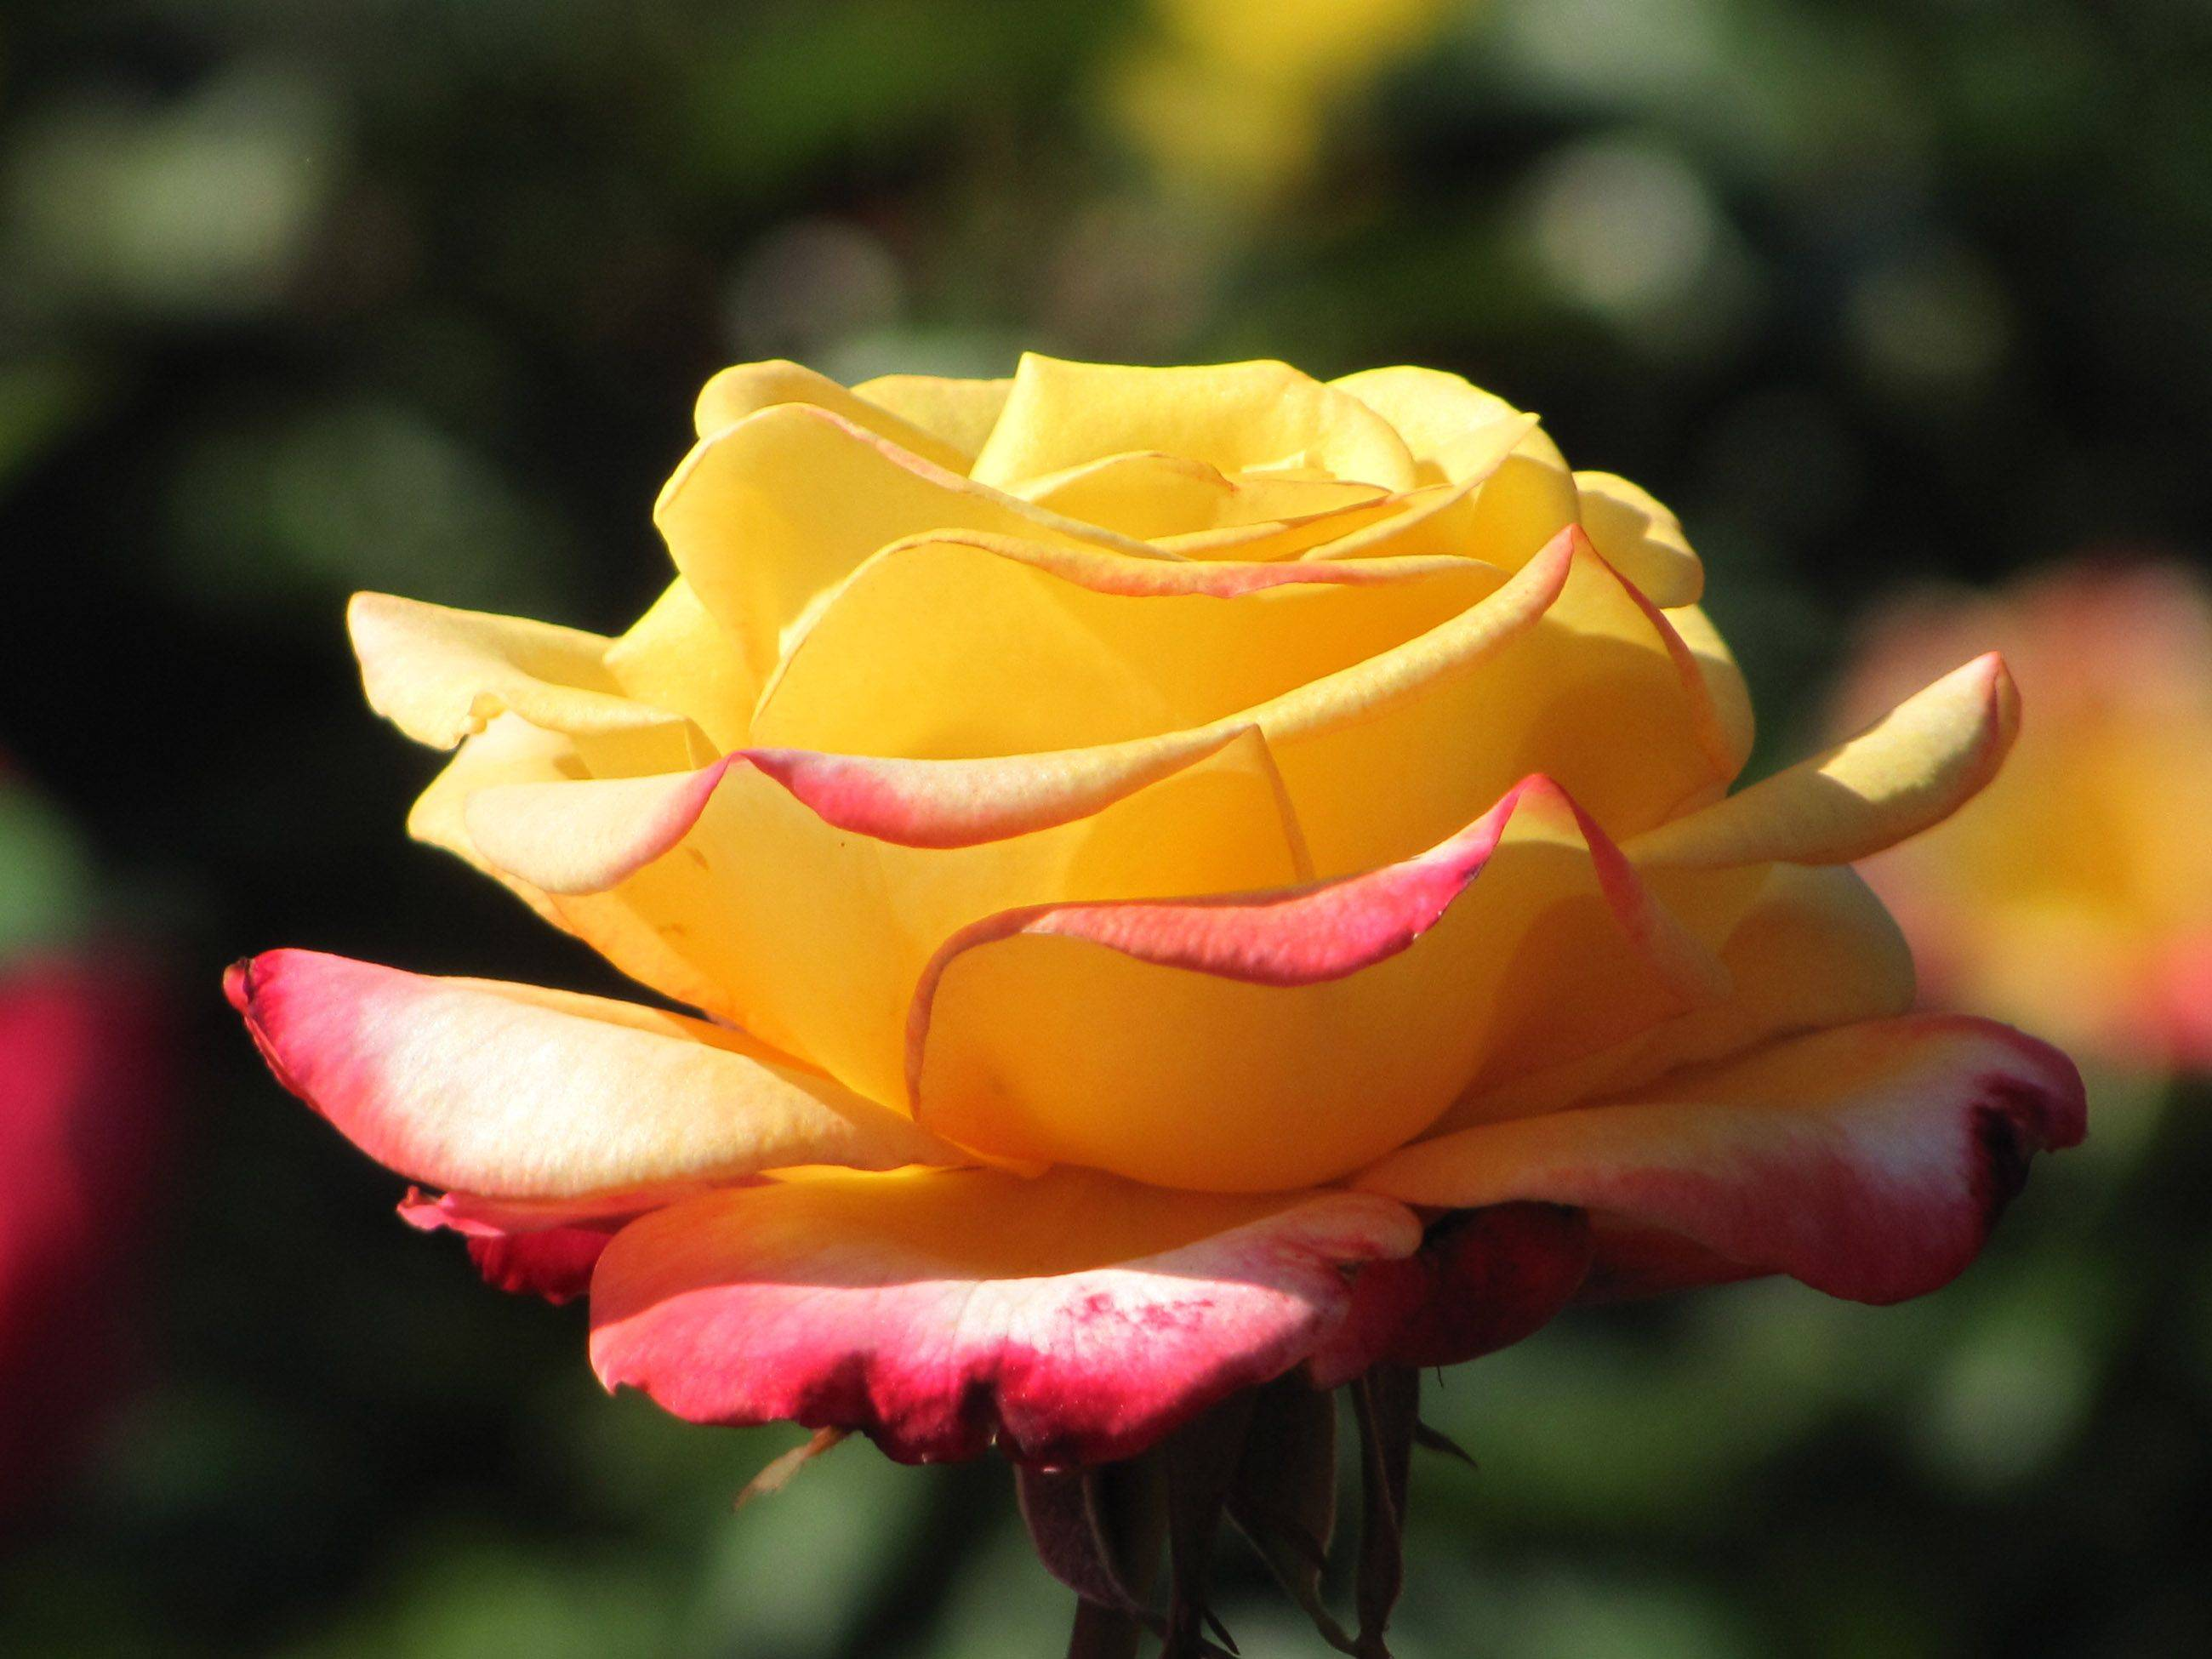 I took this picture last year at the Chicago Botanic Garden. I love the roses with more than one color on them.